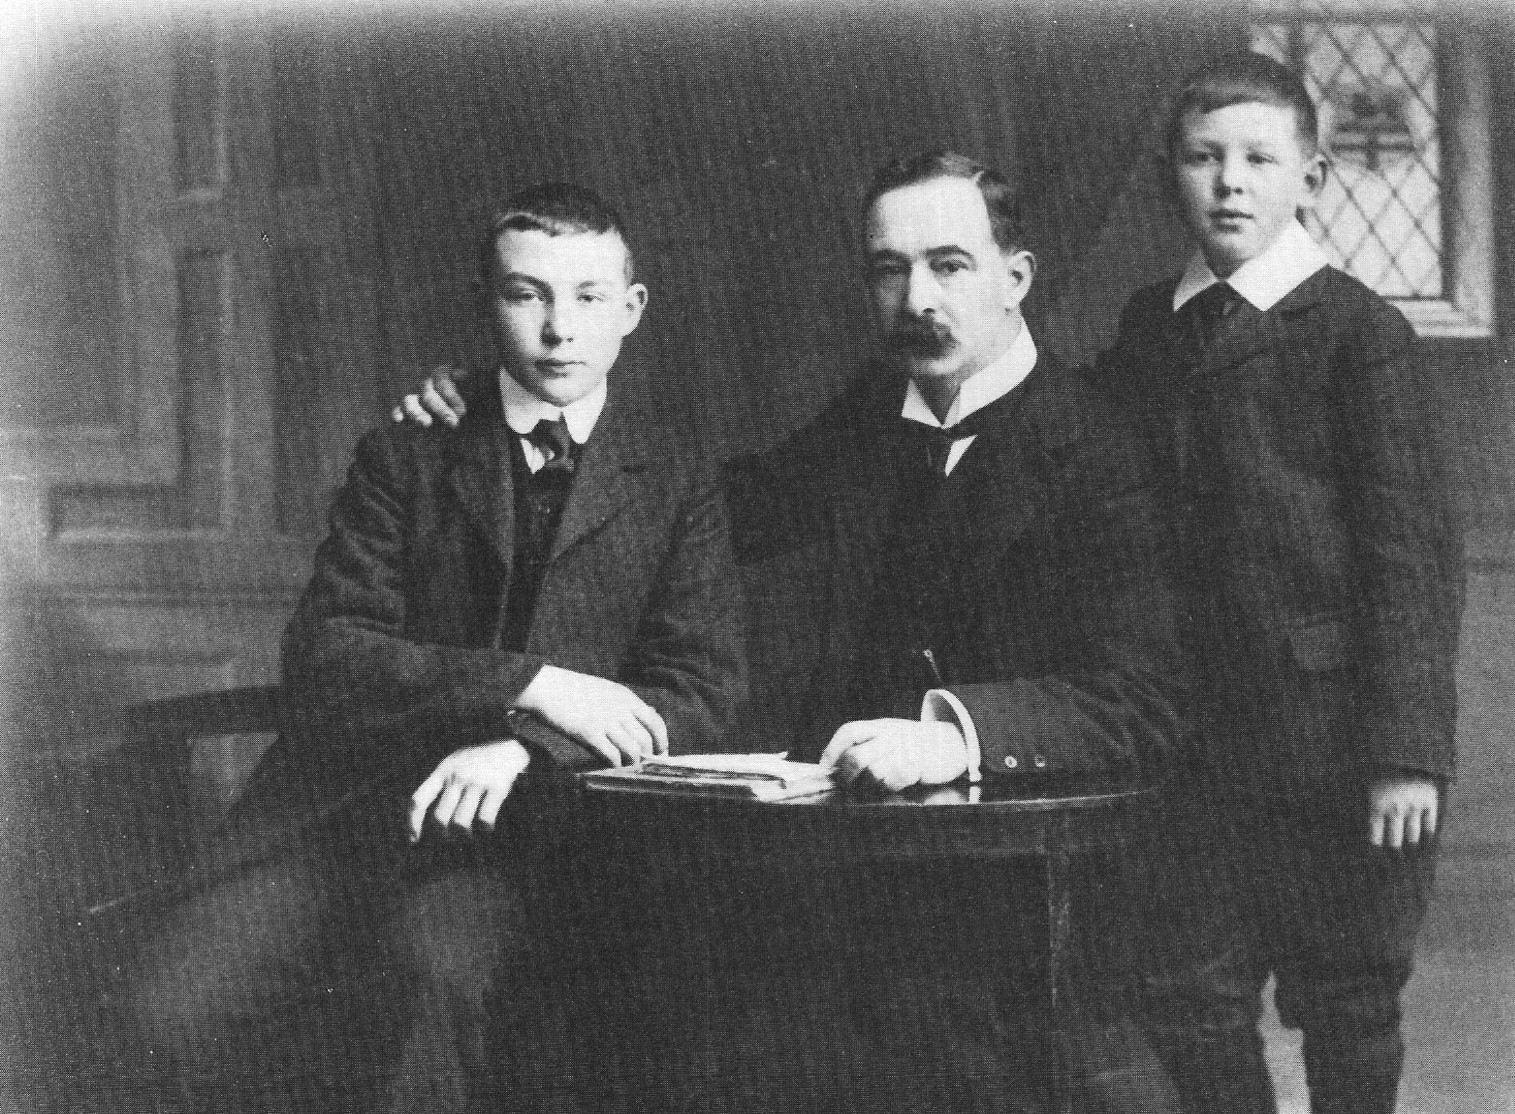 Lewis, his brother Warren, and his Father.